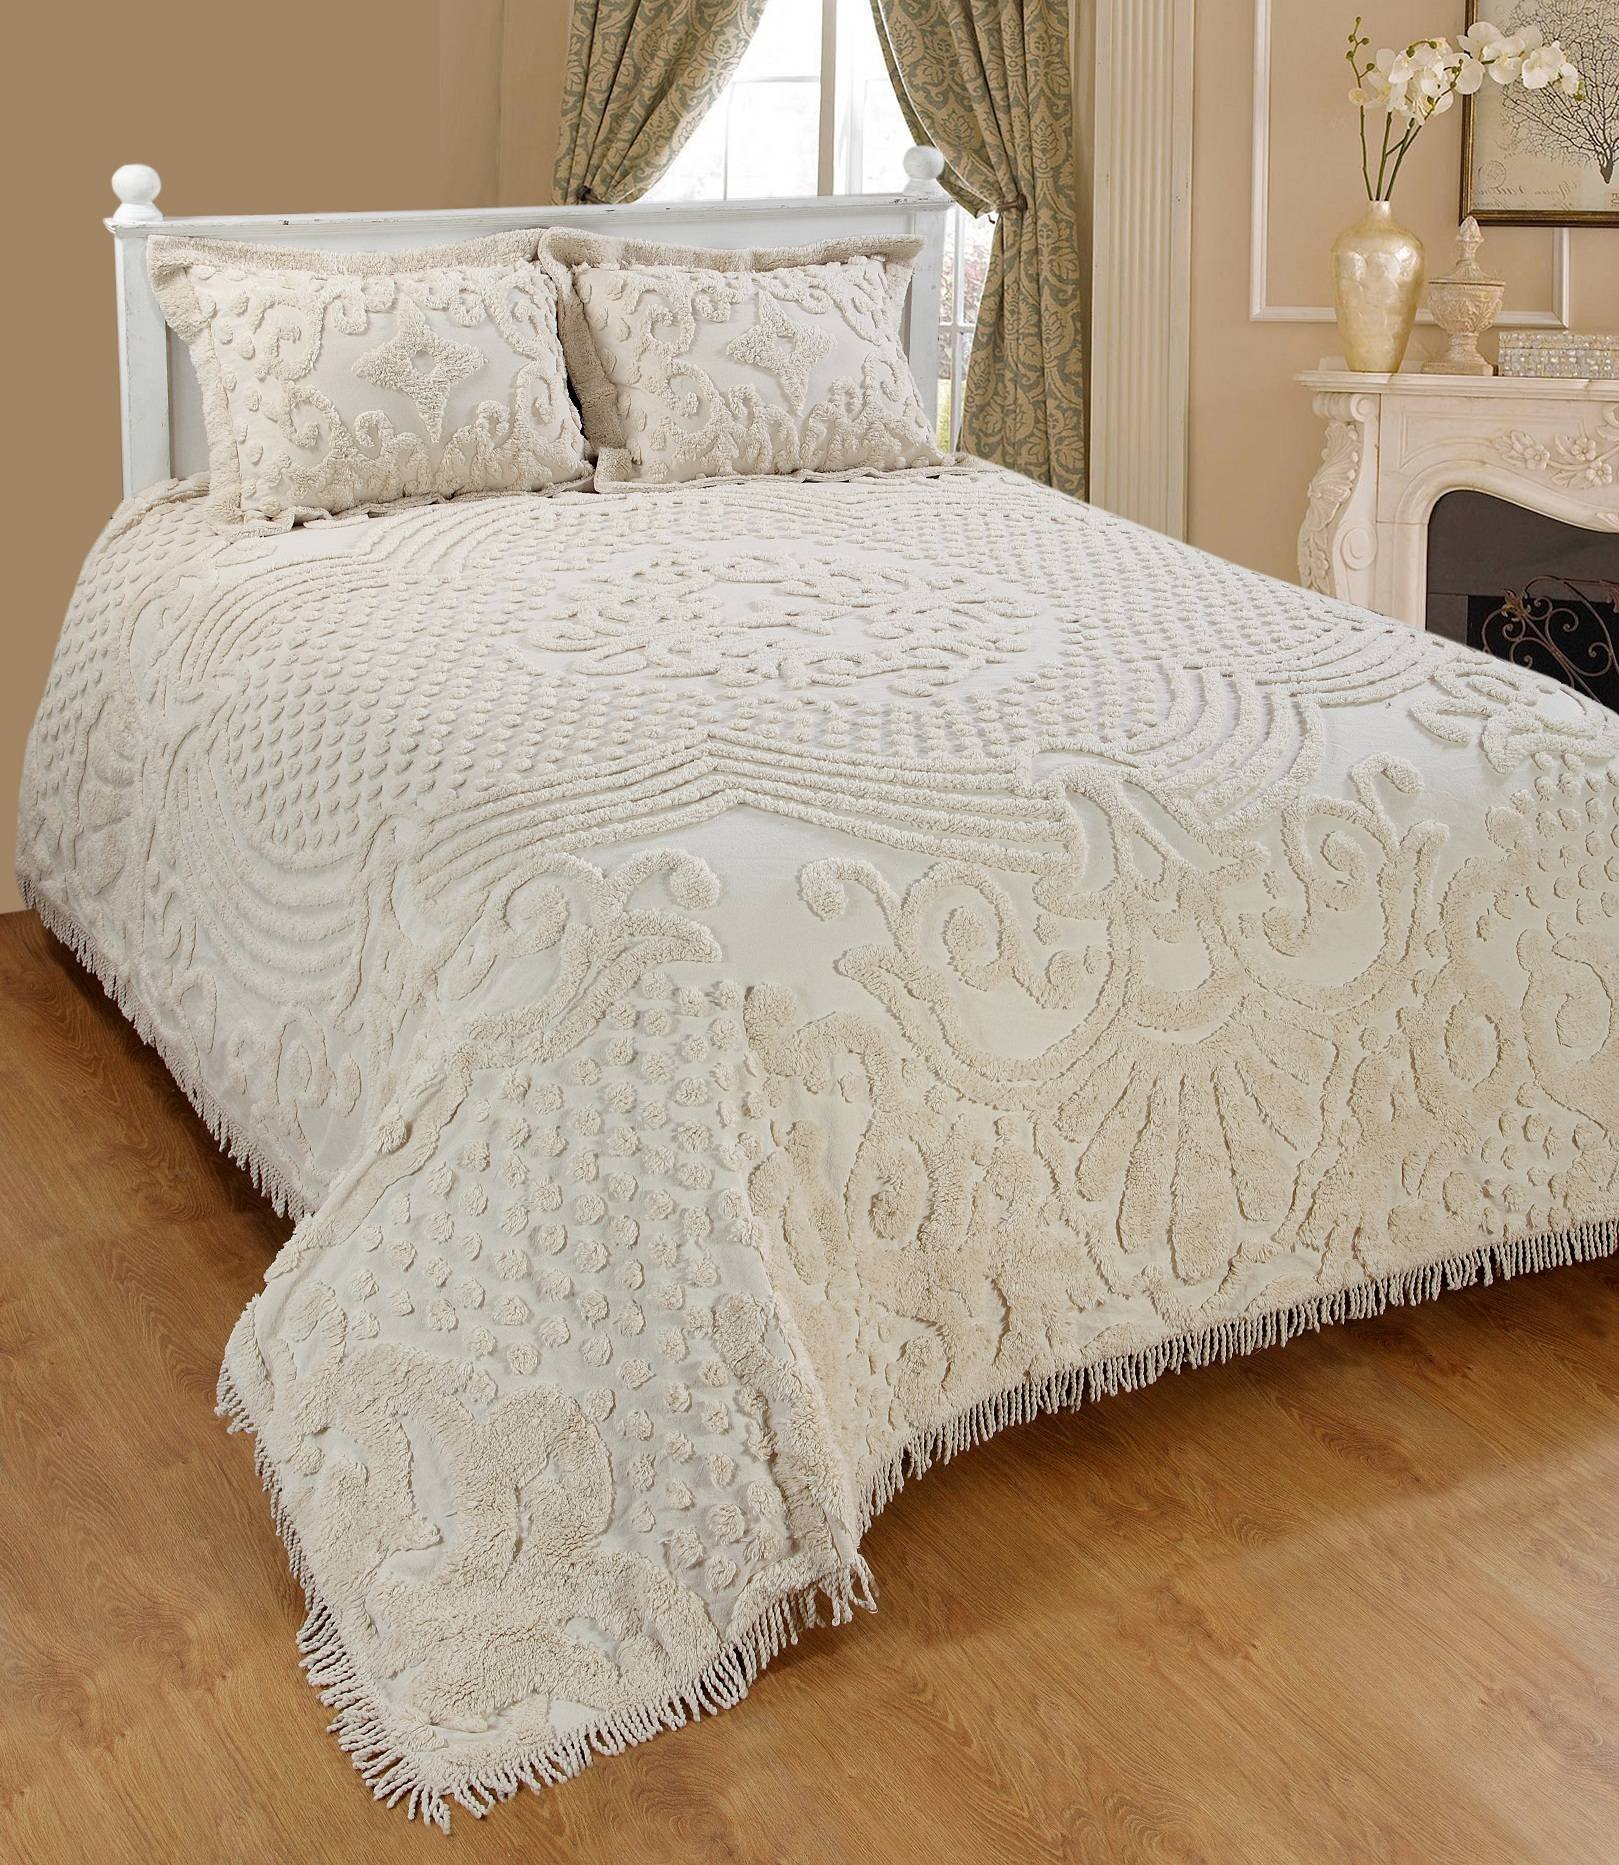 Saral Home Fashions Jewel Chenille Bedspread Sham, King, Ivory (Bedspread-118x118 inches, Sham-26x20+2 inches)